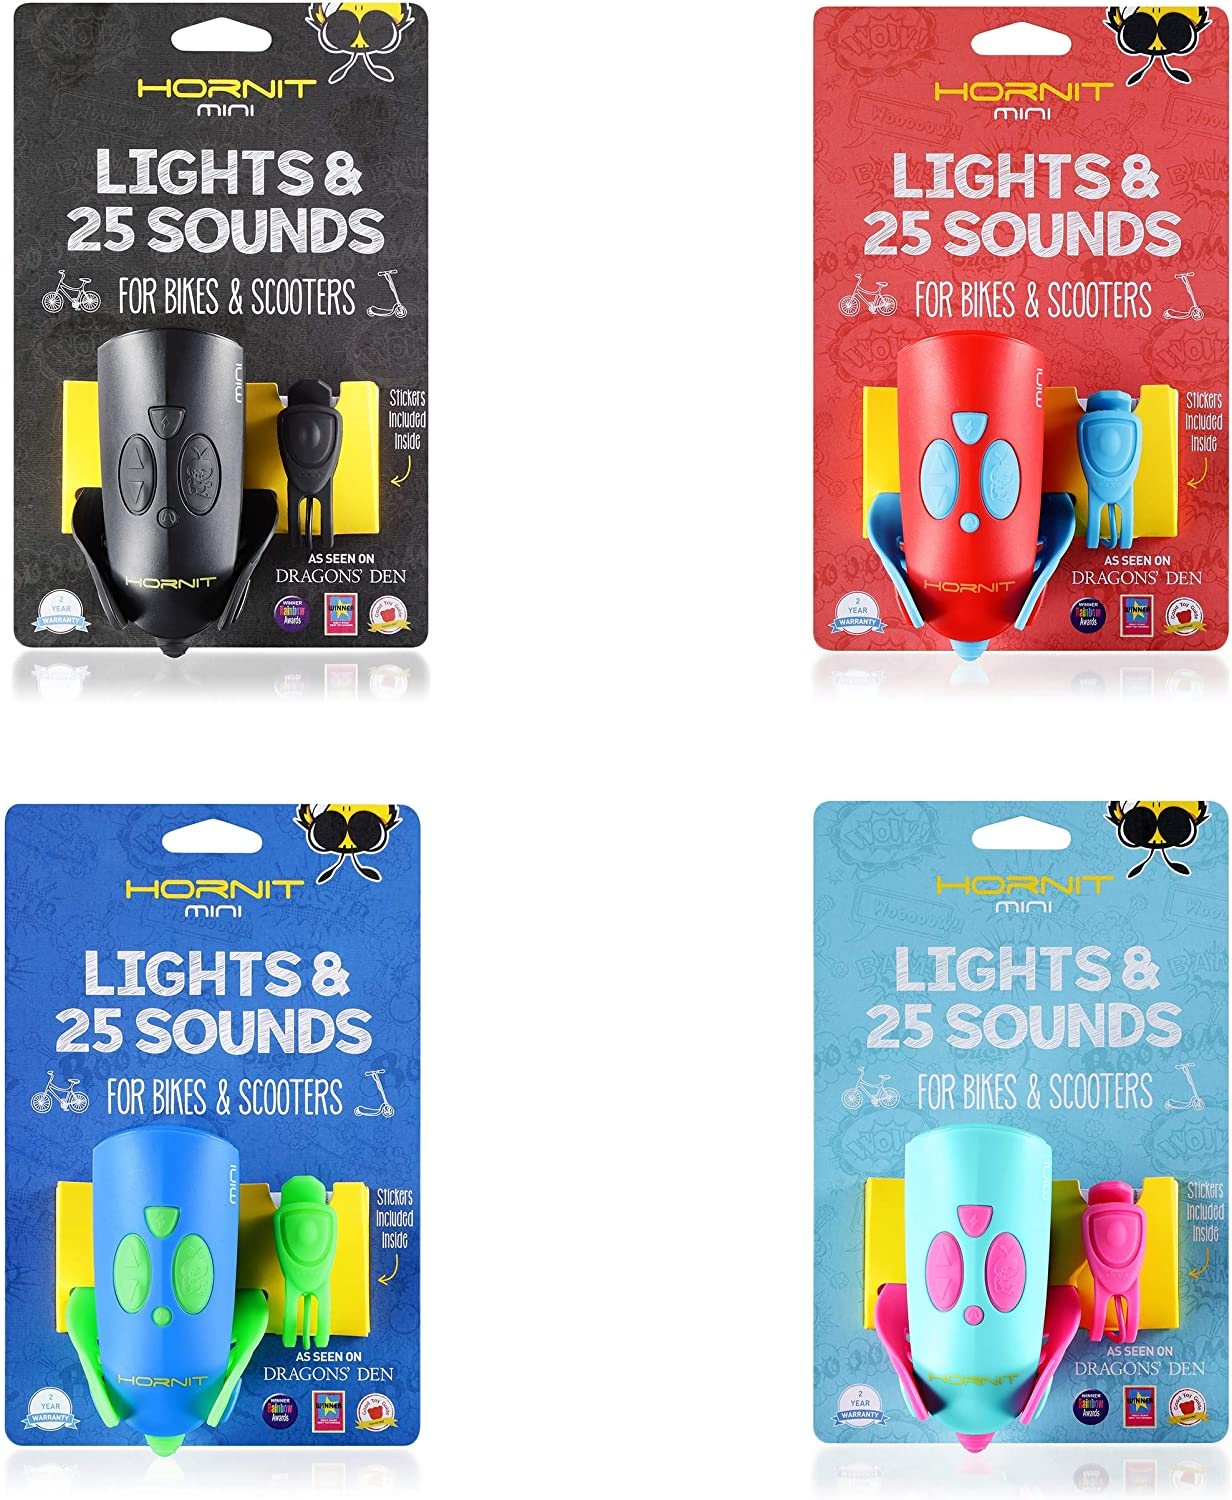 5 Lights 25 Sound effects Bike /& Scooter Horn and Light for Children and Kids Hornit MINI